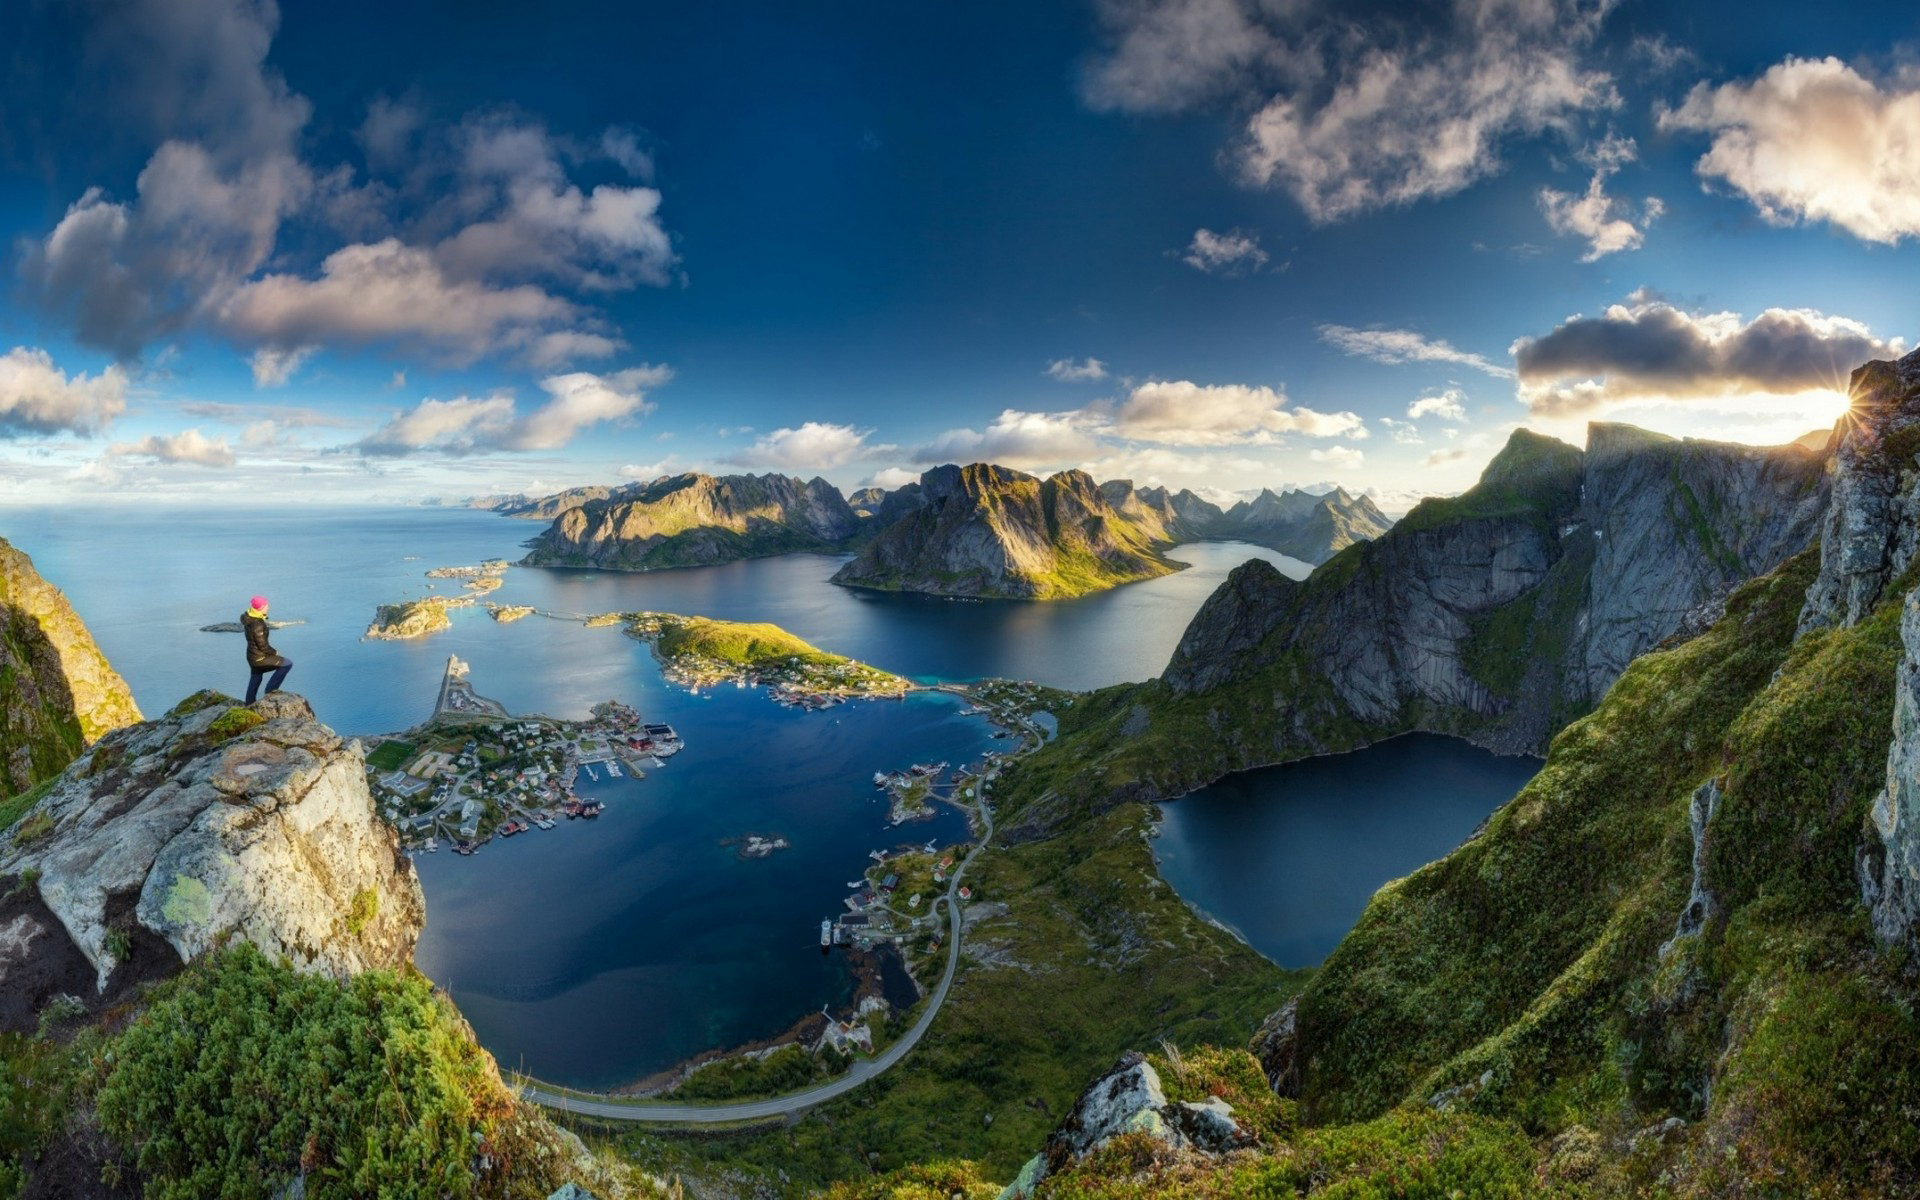 15 Incredibly Beautiful Places On Earth You Never Knew Existed